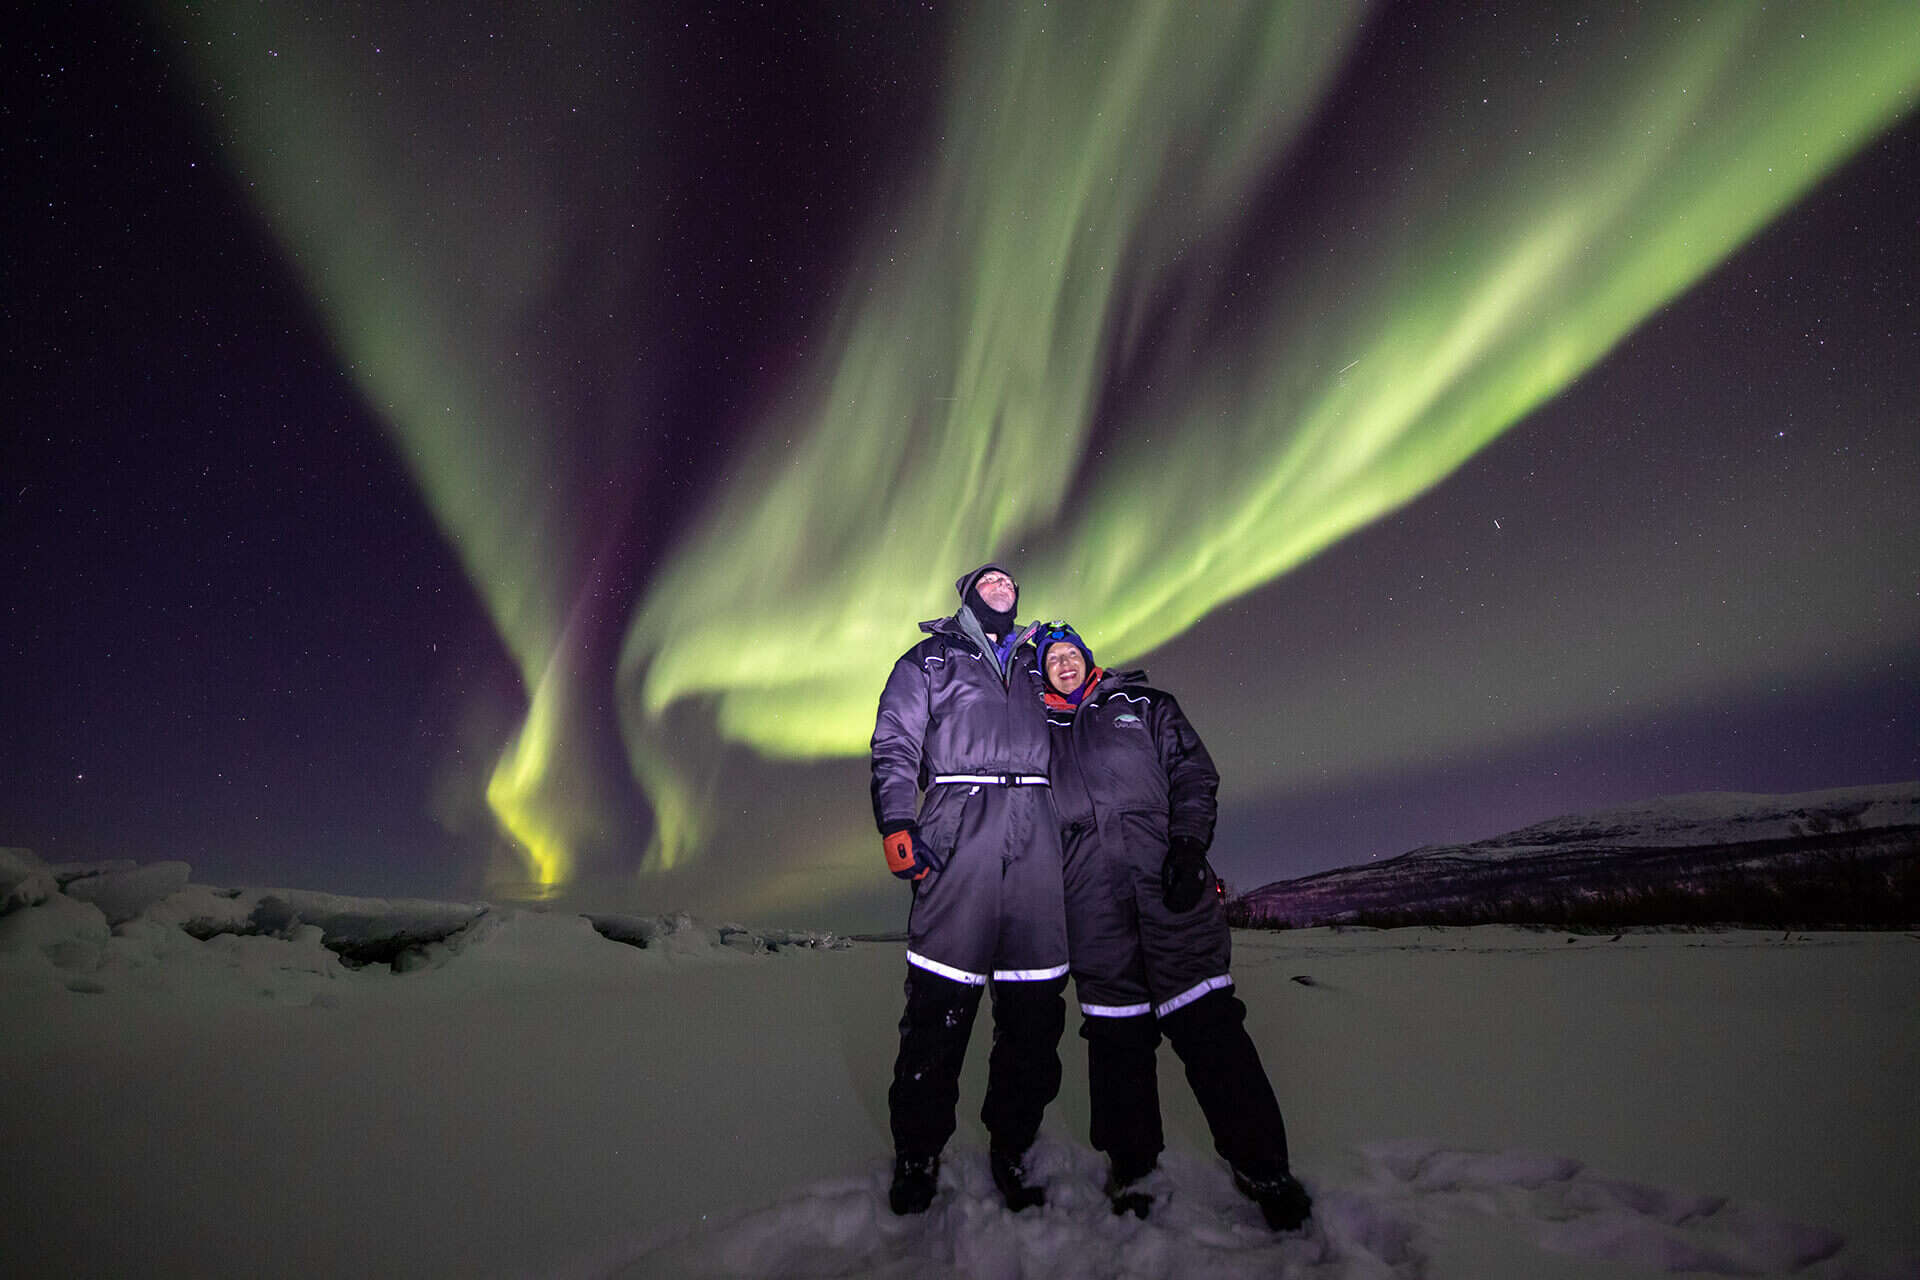 Experience the magical aurora borealis in Abisko National Park Sweden - Lights over Lapland